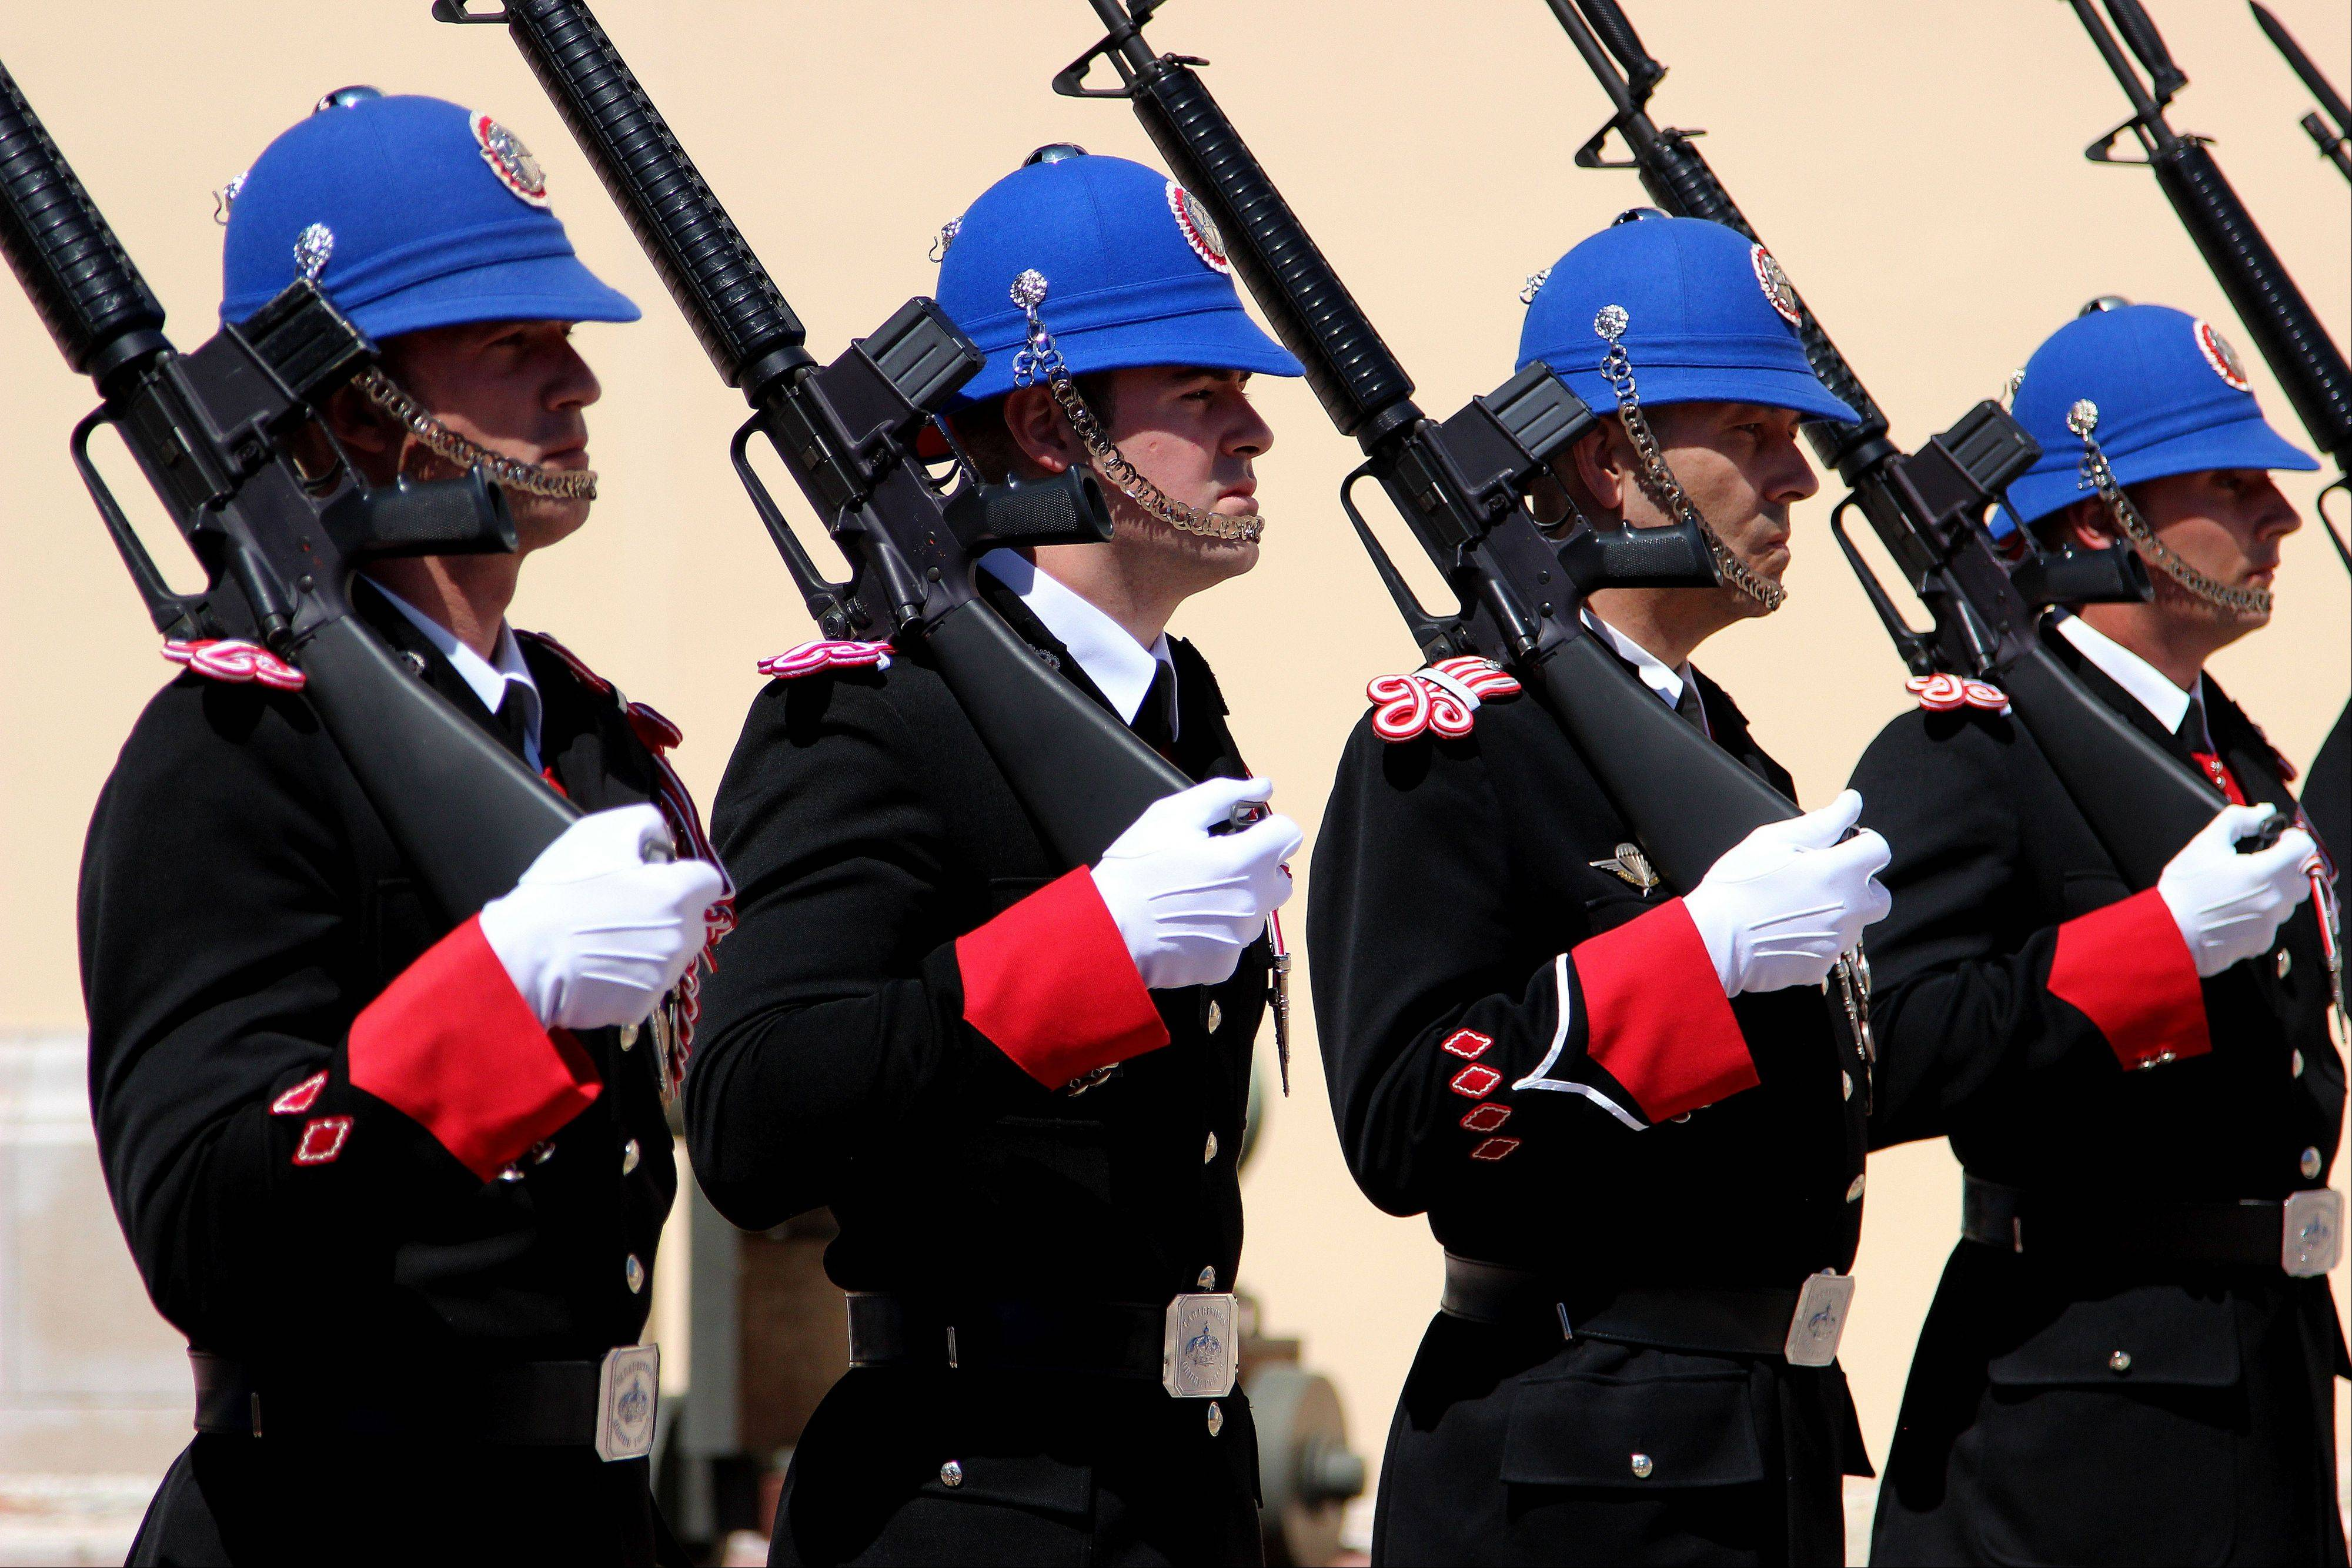 The changing of the guard outside the Prince�s Palace in Monaco takes place at 11:55 a.m. each day.